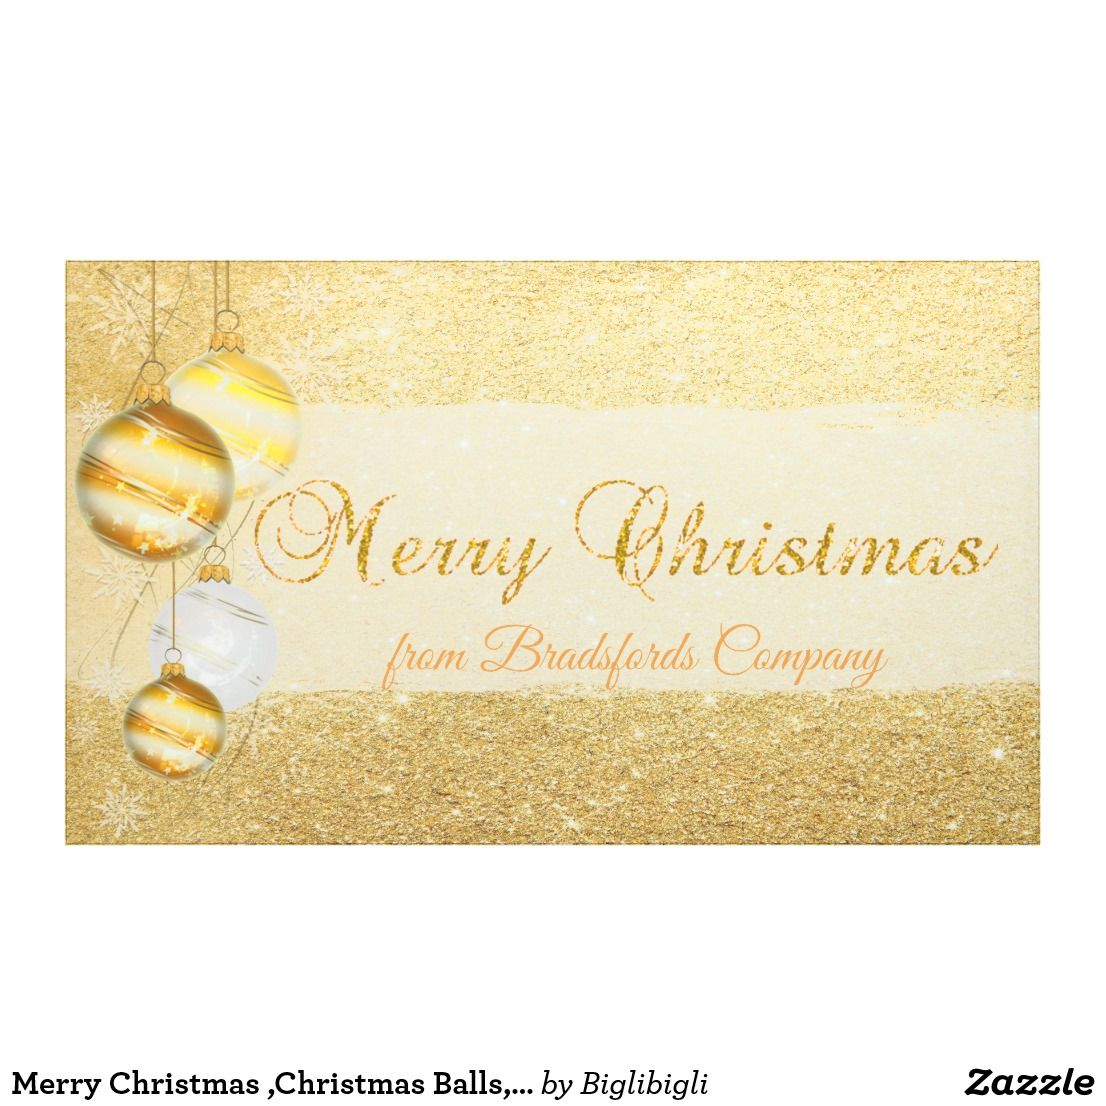 Classy Christmas Banners Company Service Banners